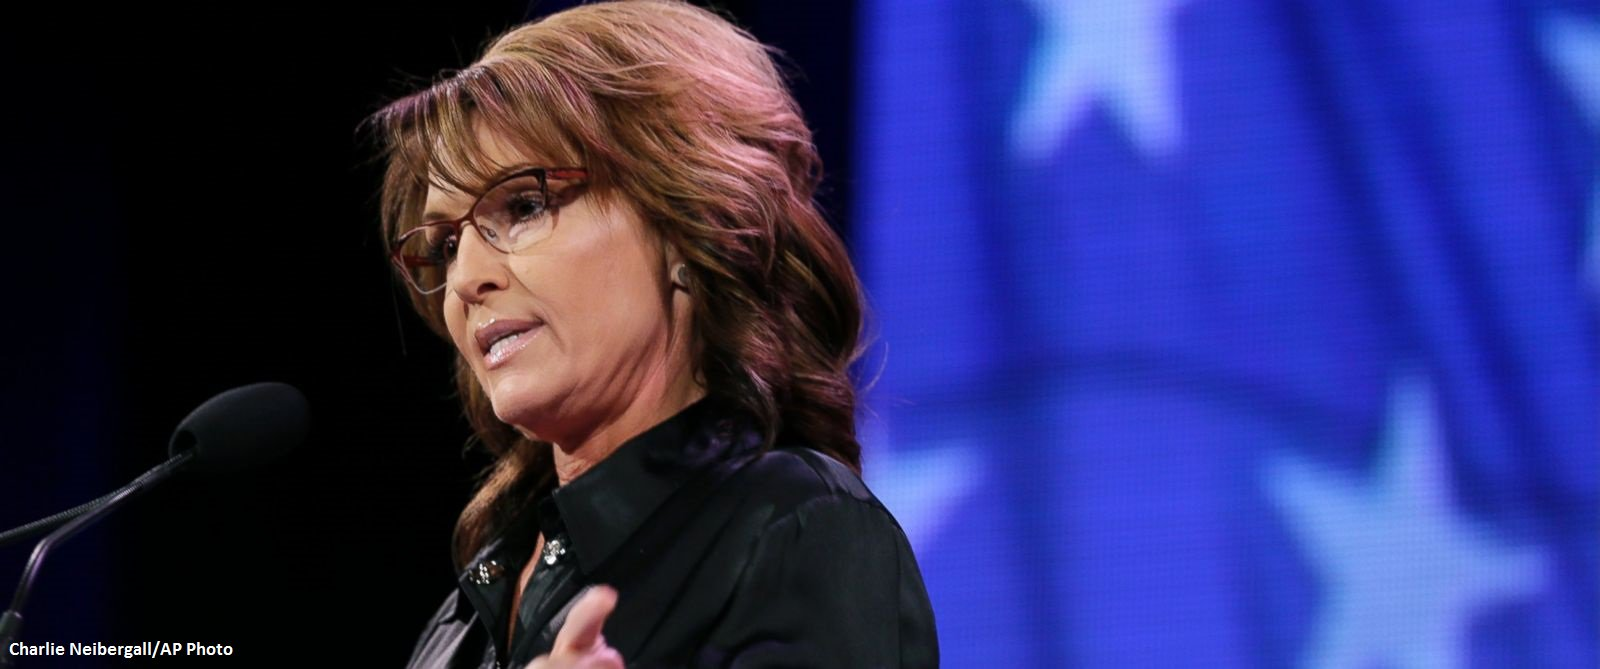 The New York Times asks judge to toss out defamation lawsuit by Sarah Palin https://t.co/24kXtvtfpJ https://t.co/9ogpEC3cVP